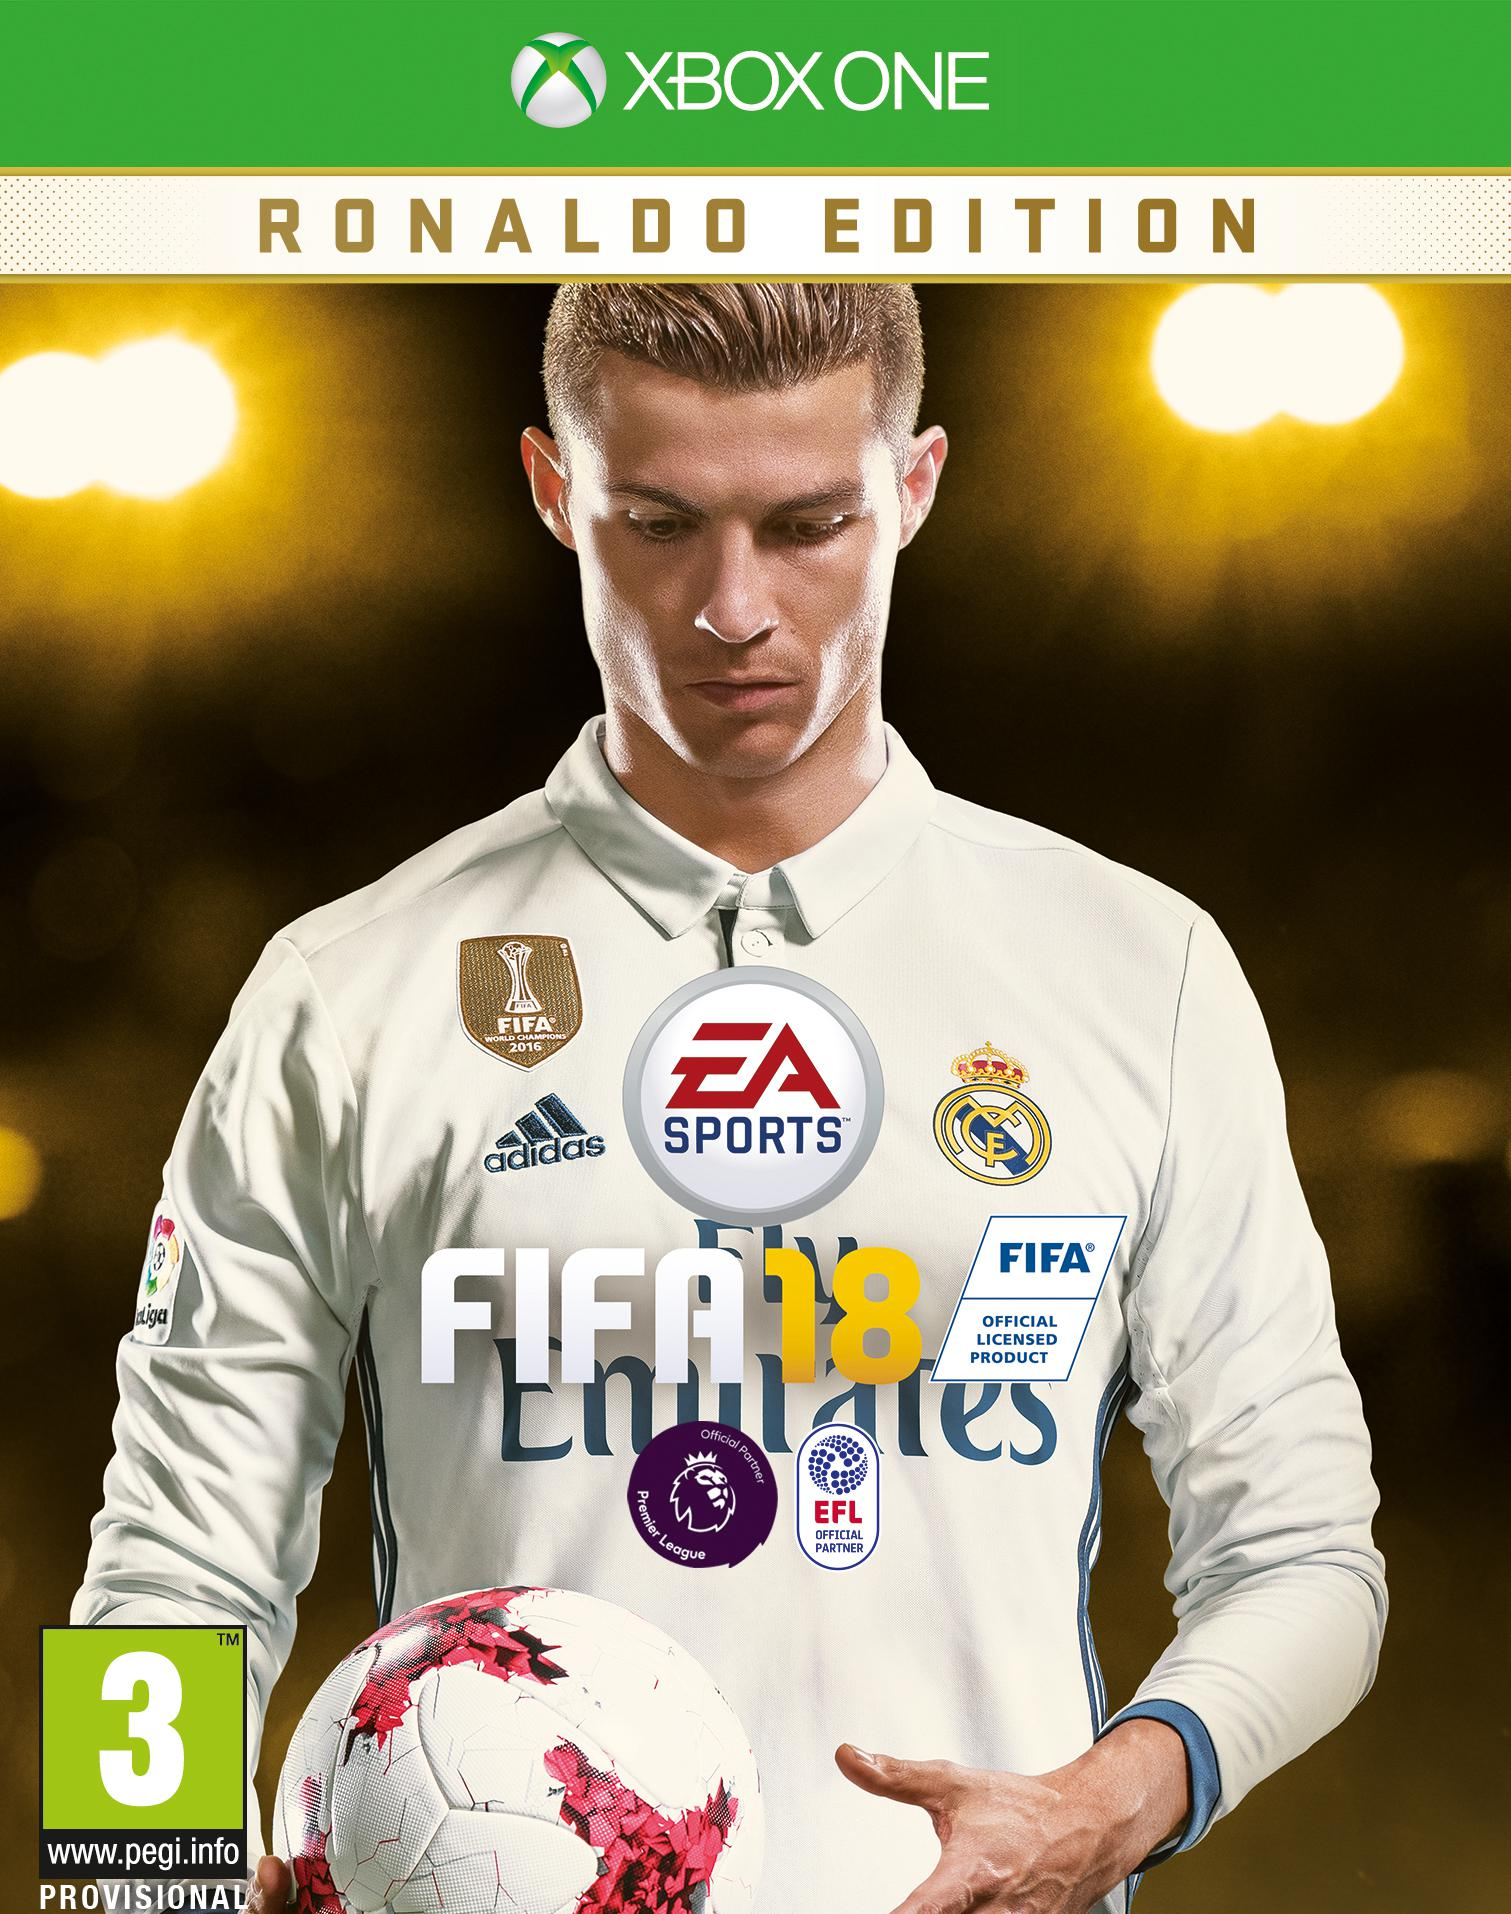 The Xbox One cover of FIFA 18